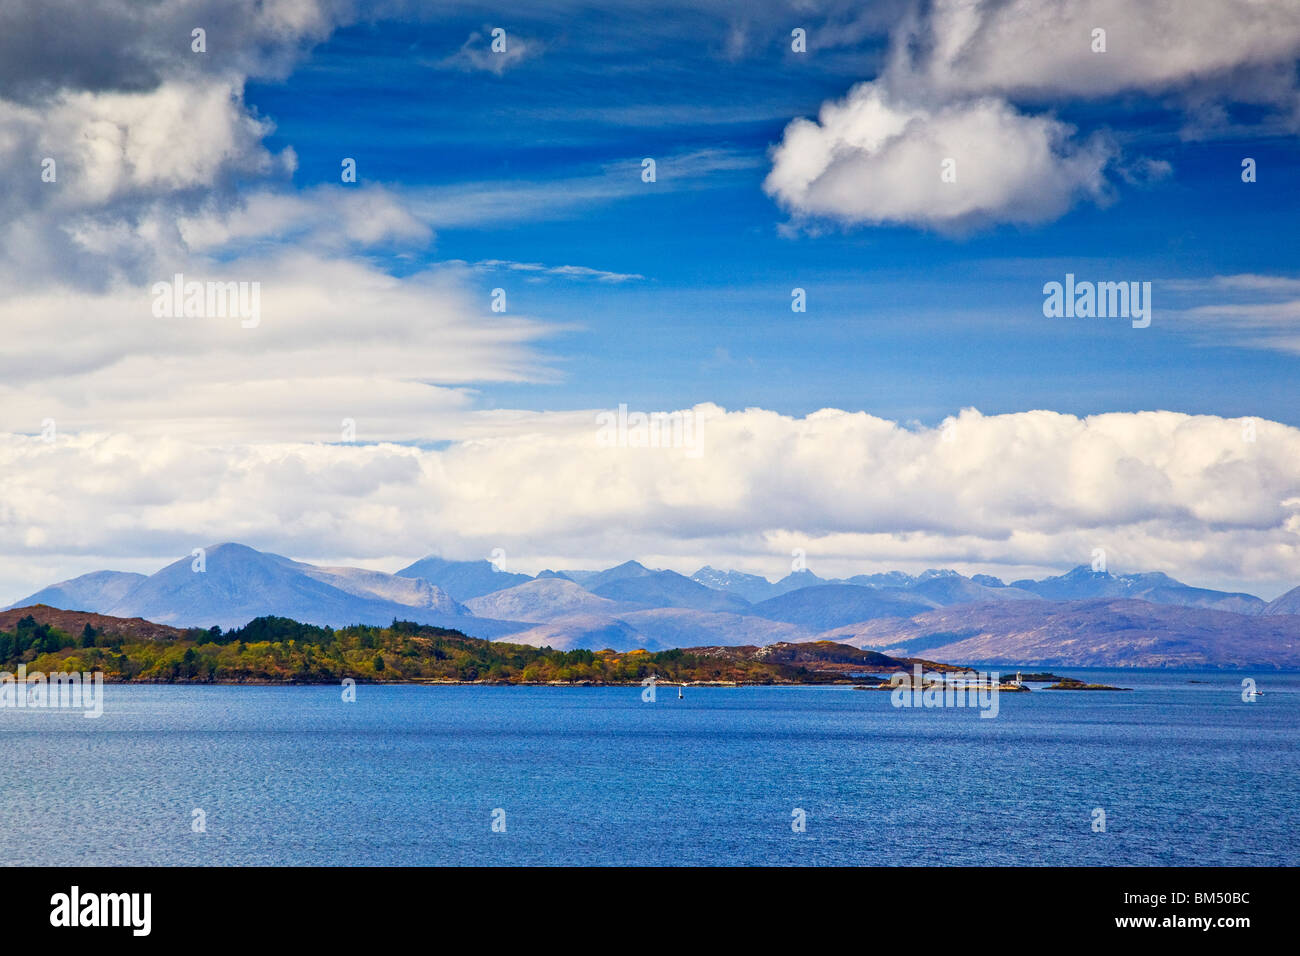 Plocton & the Cuillins, Loch Carron, Wester Ross Scotland West coast Highlands Great Britain UK 2010 - Stock Image